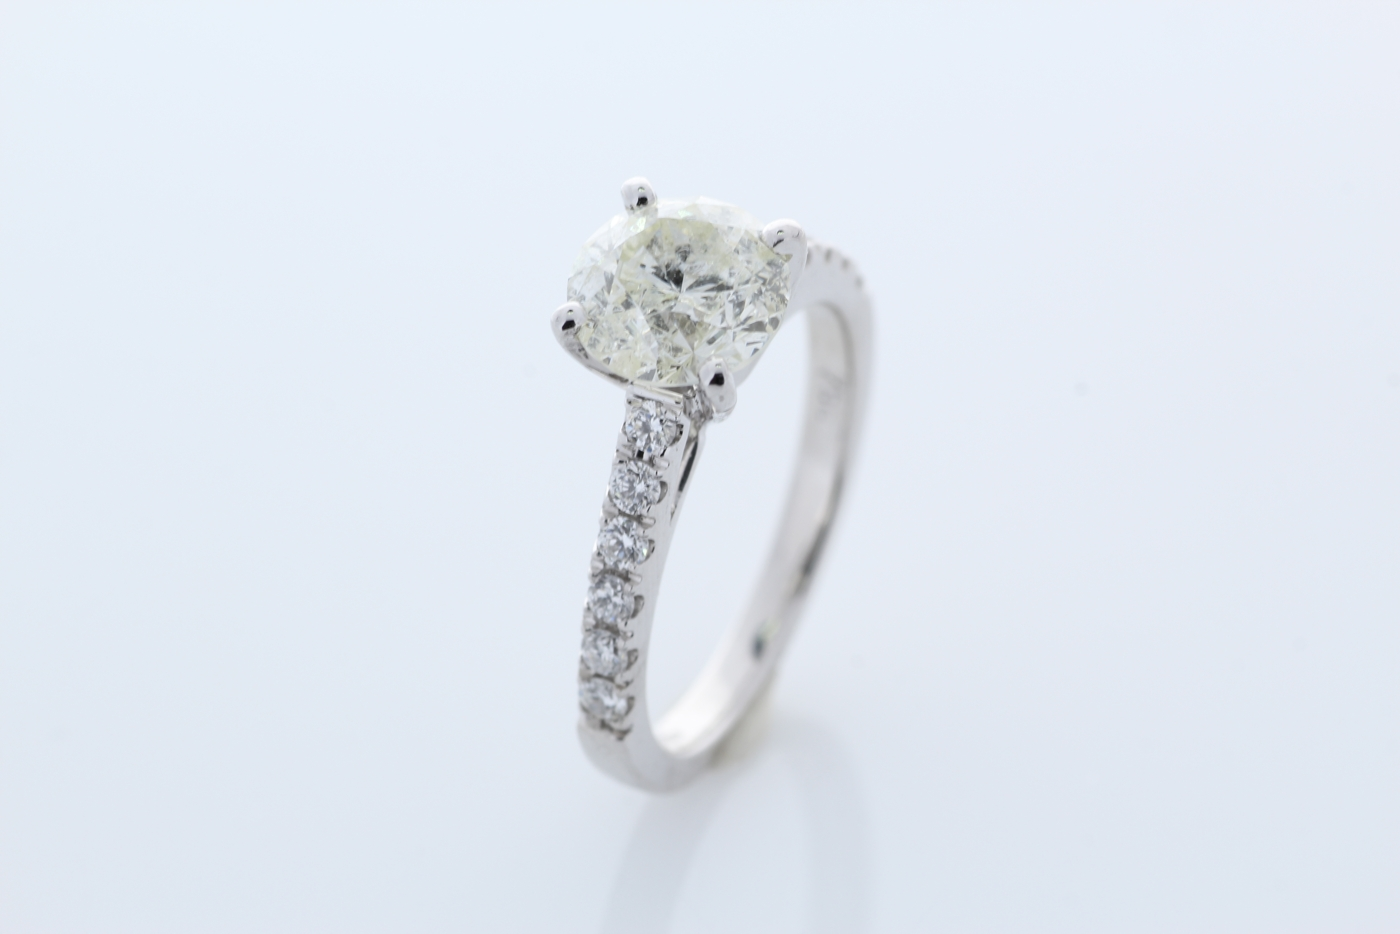 18ct White Gold Stone Set Shoulders Diamond Ring 1.92 Carats - Image 5 of 6